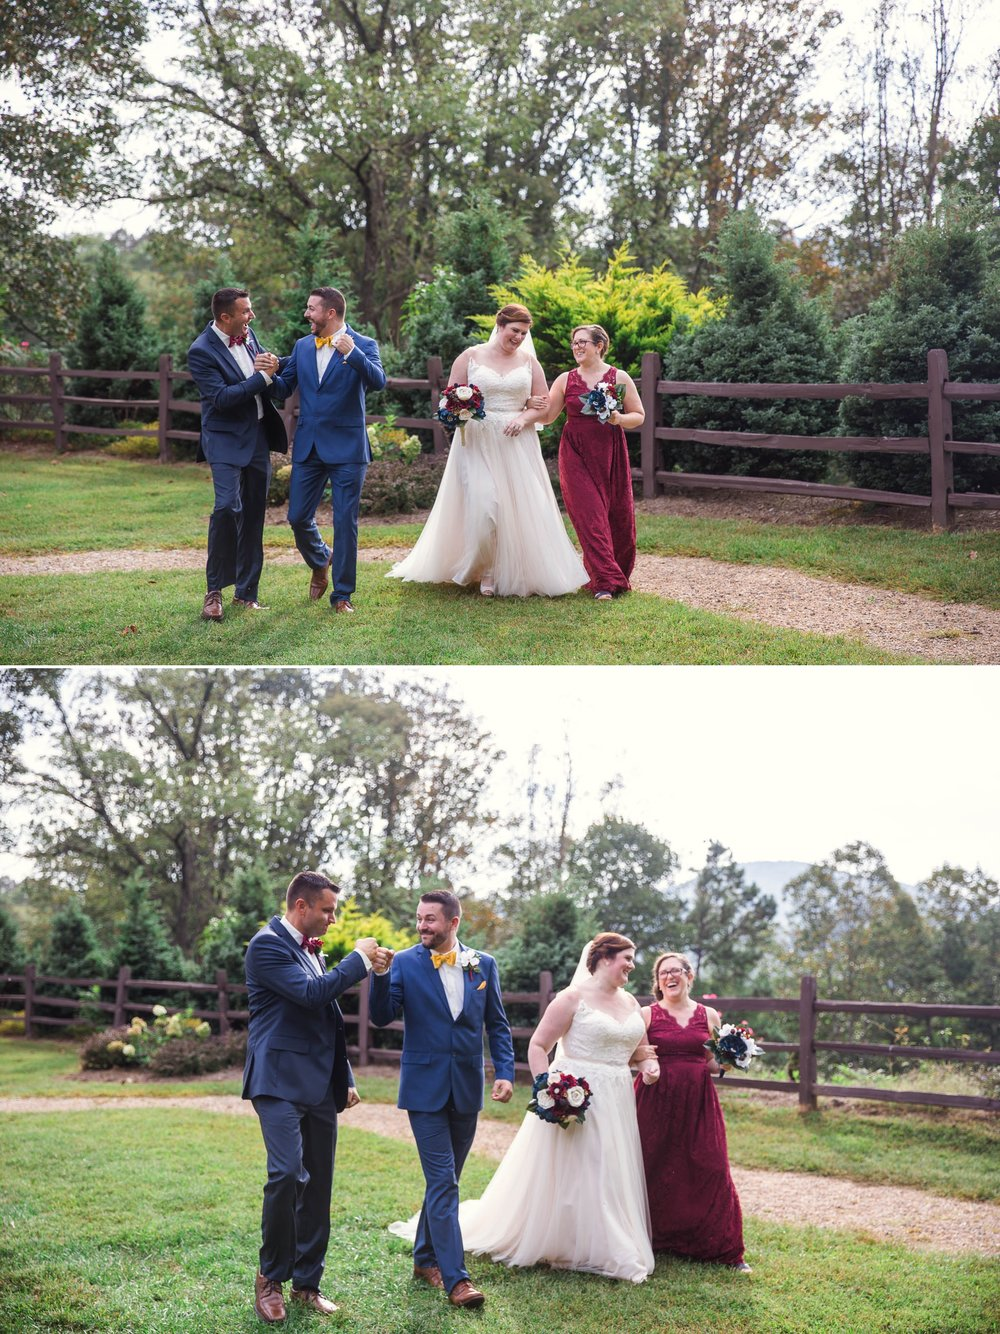 Portraits of the Wedding Party - Meredith + Jason - The Crest Center and Pavilion in Asheville, NC - Raleigh Wedding Photographer